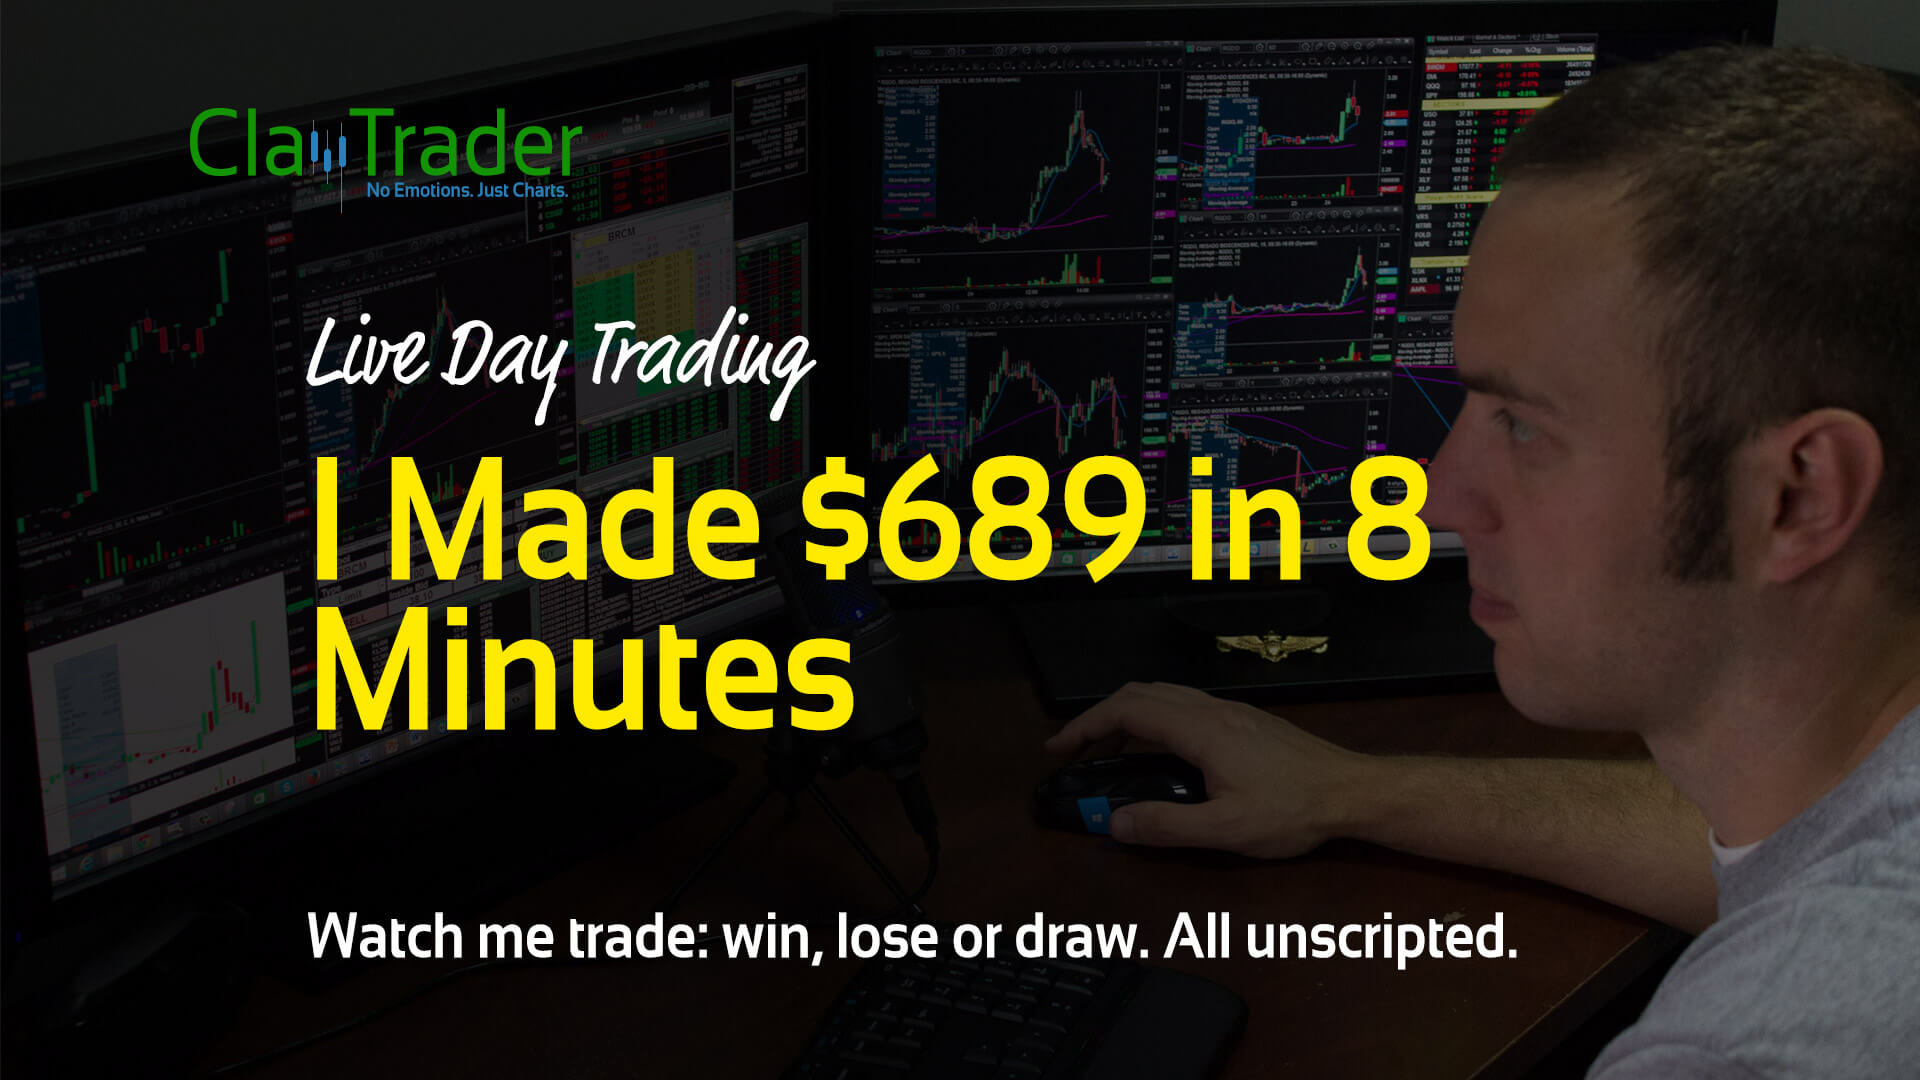 I Made $689 in 8 Minutes